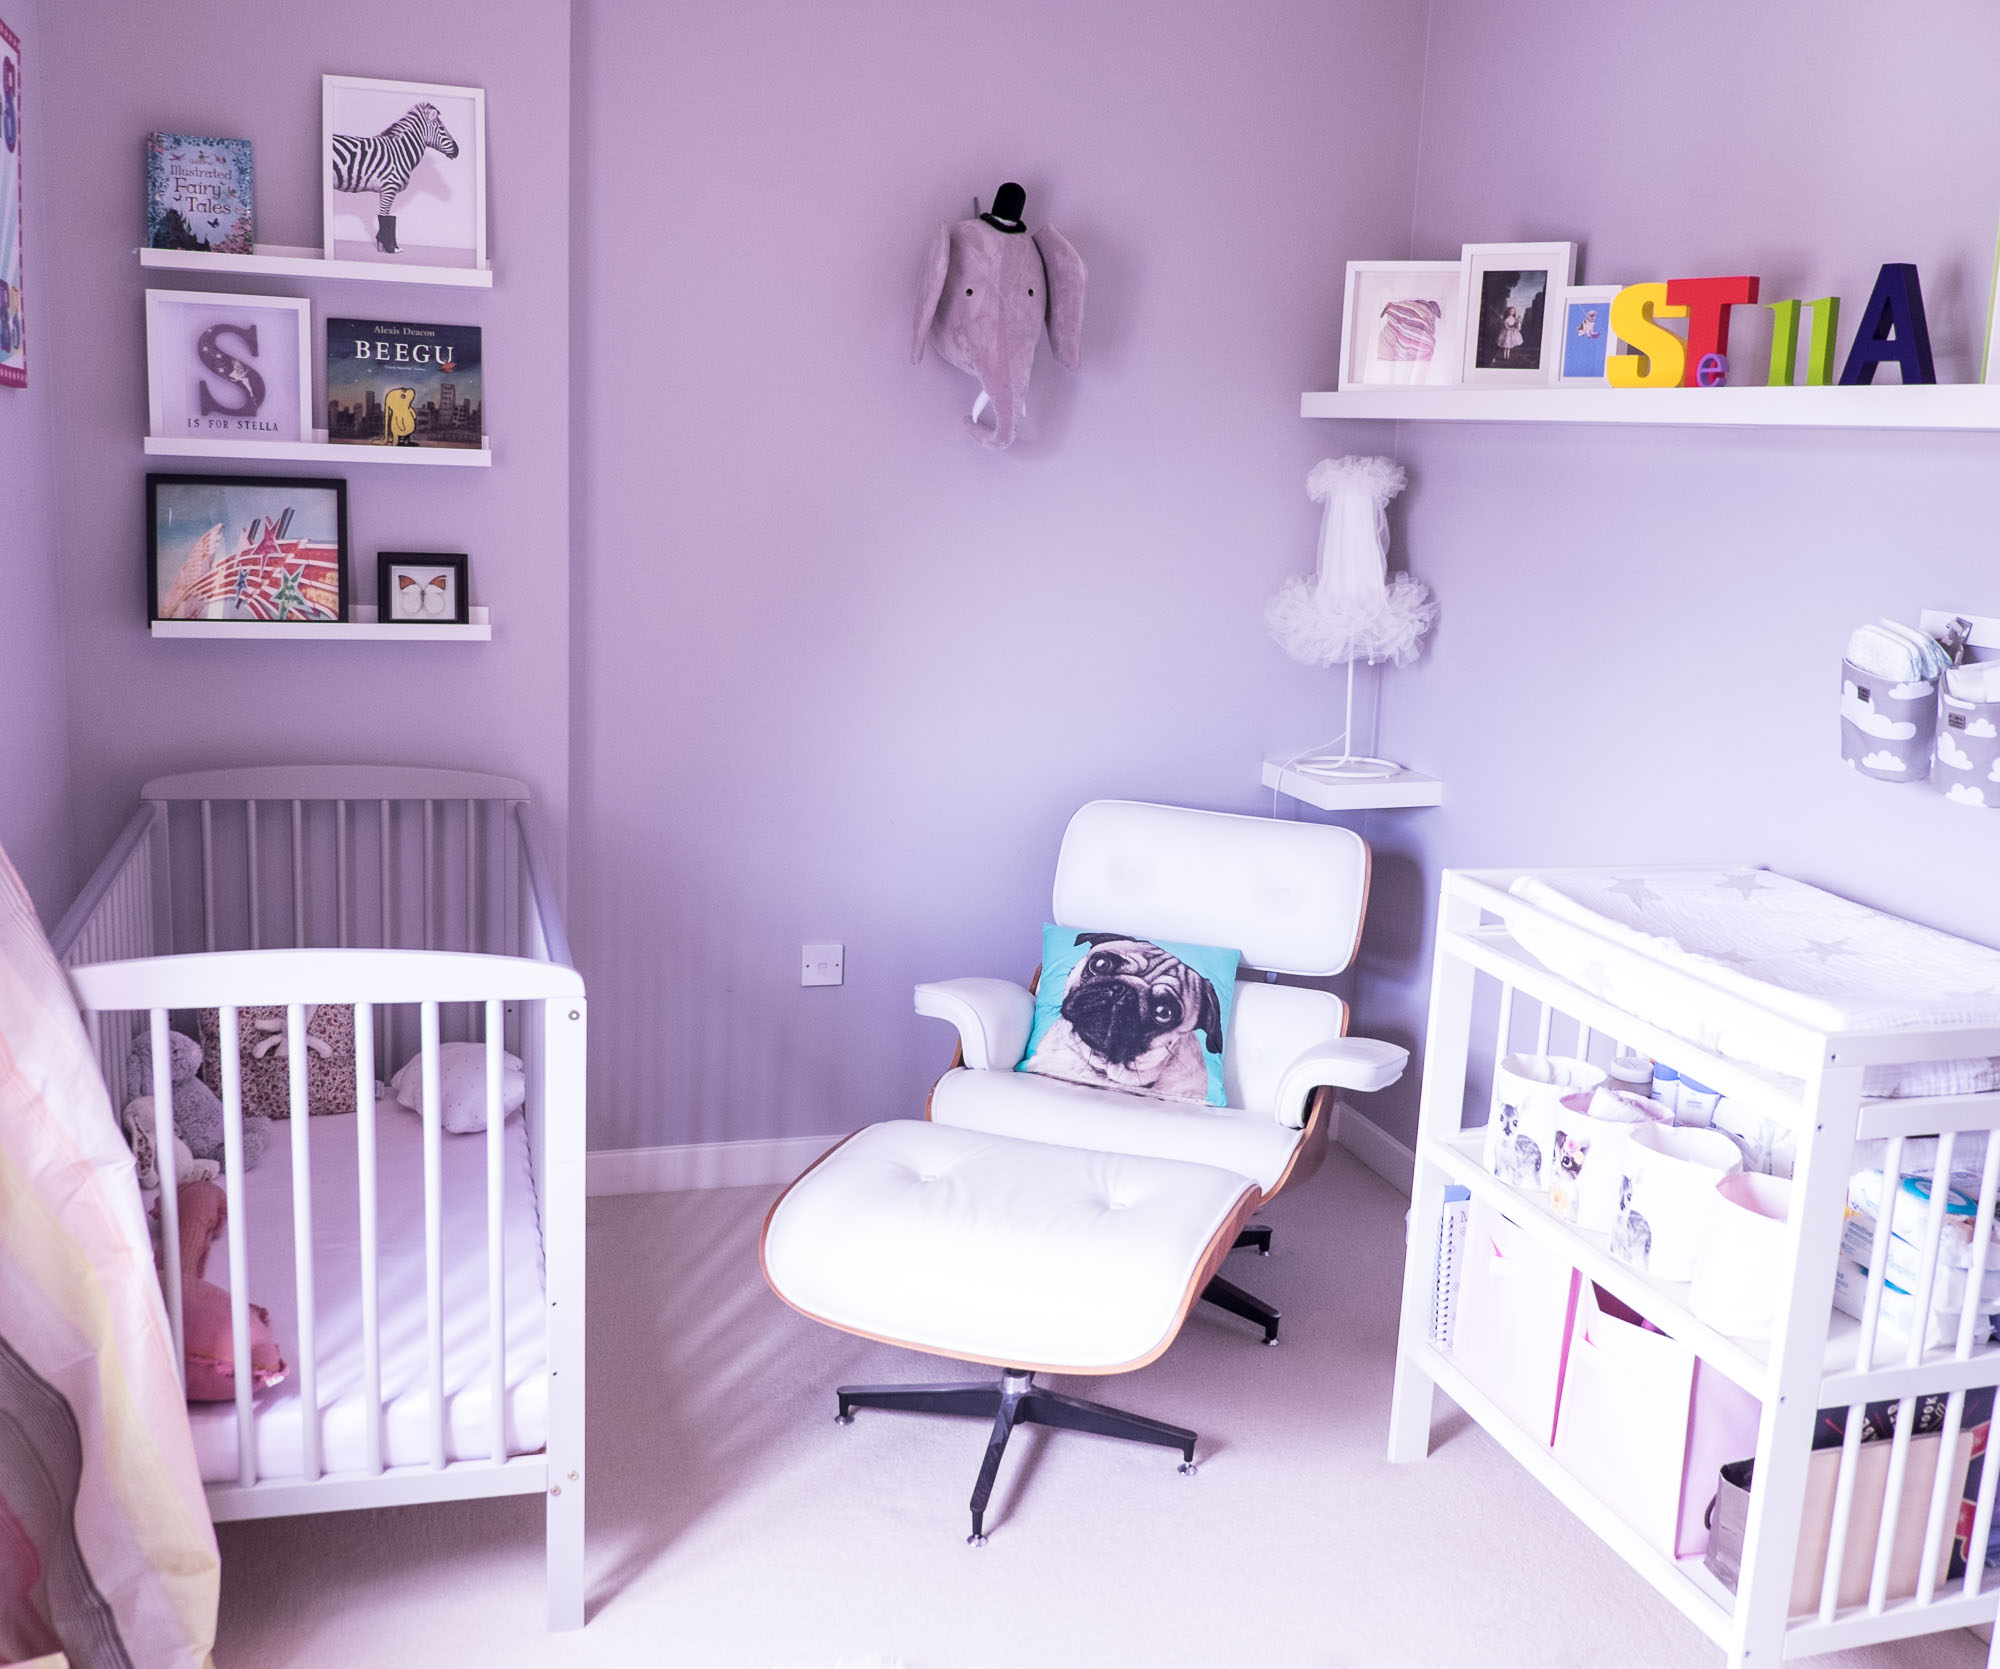 Stella's nursery look completed with my beloved Eames Lounge chair (Photography by Jonathan Lappin)